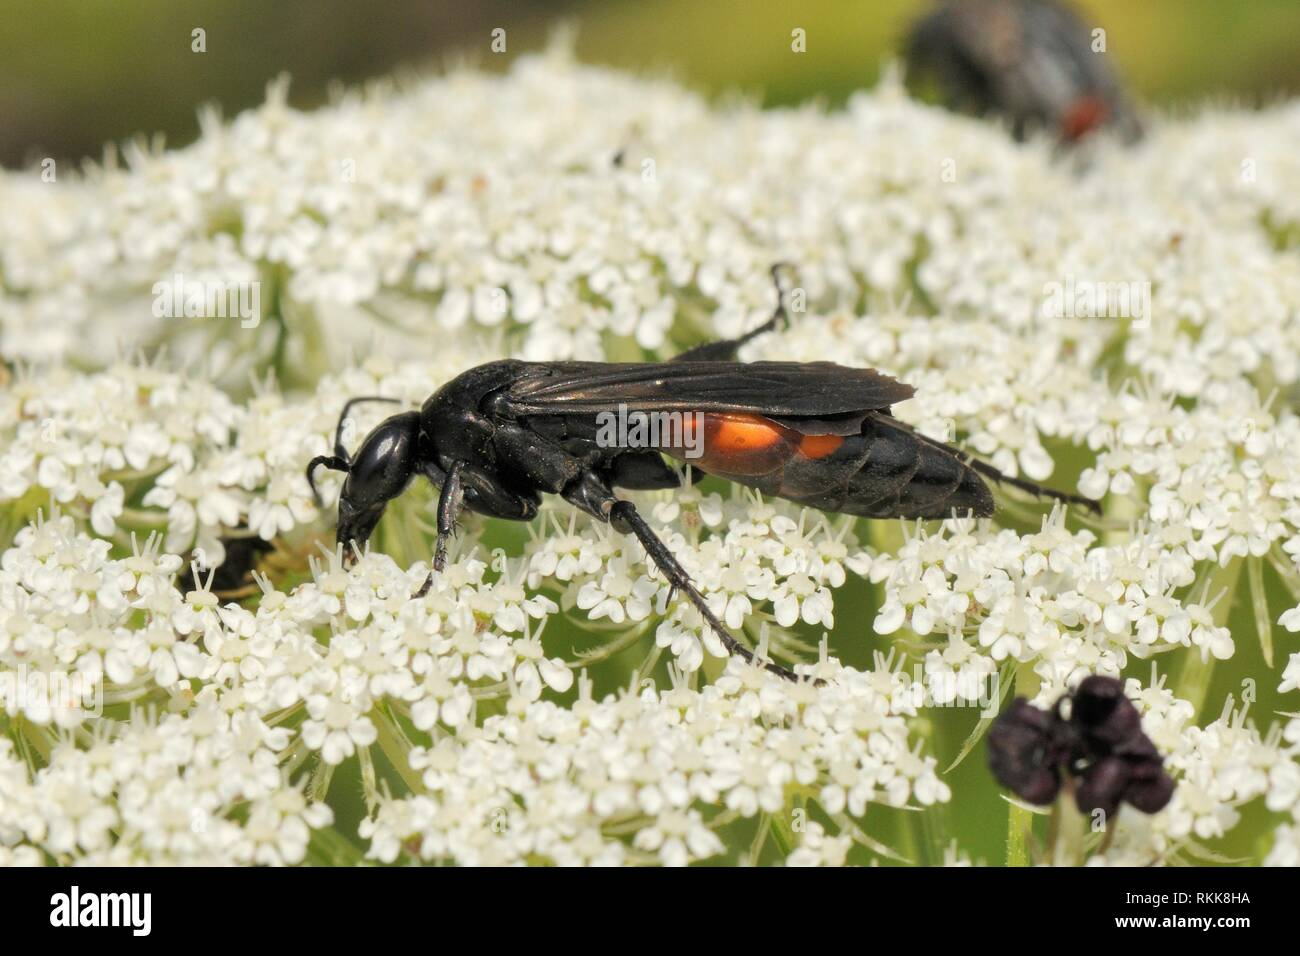 Spider wasp (Entomobora vomeriventris)  feeding on Wild carrot / Queen Anne's lace (Daucus carota) flowers, Lesbos / Lesvos, Greece, May. - Stock Image